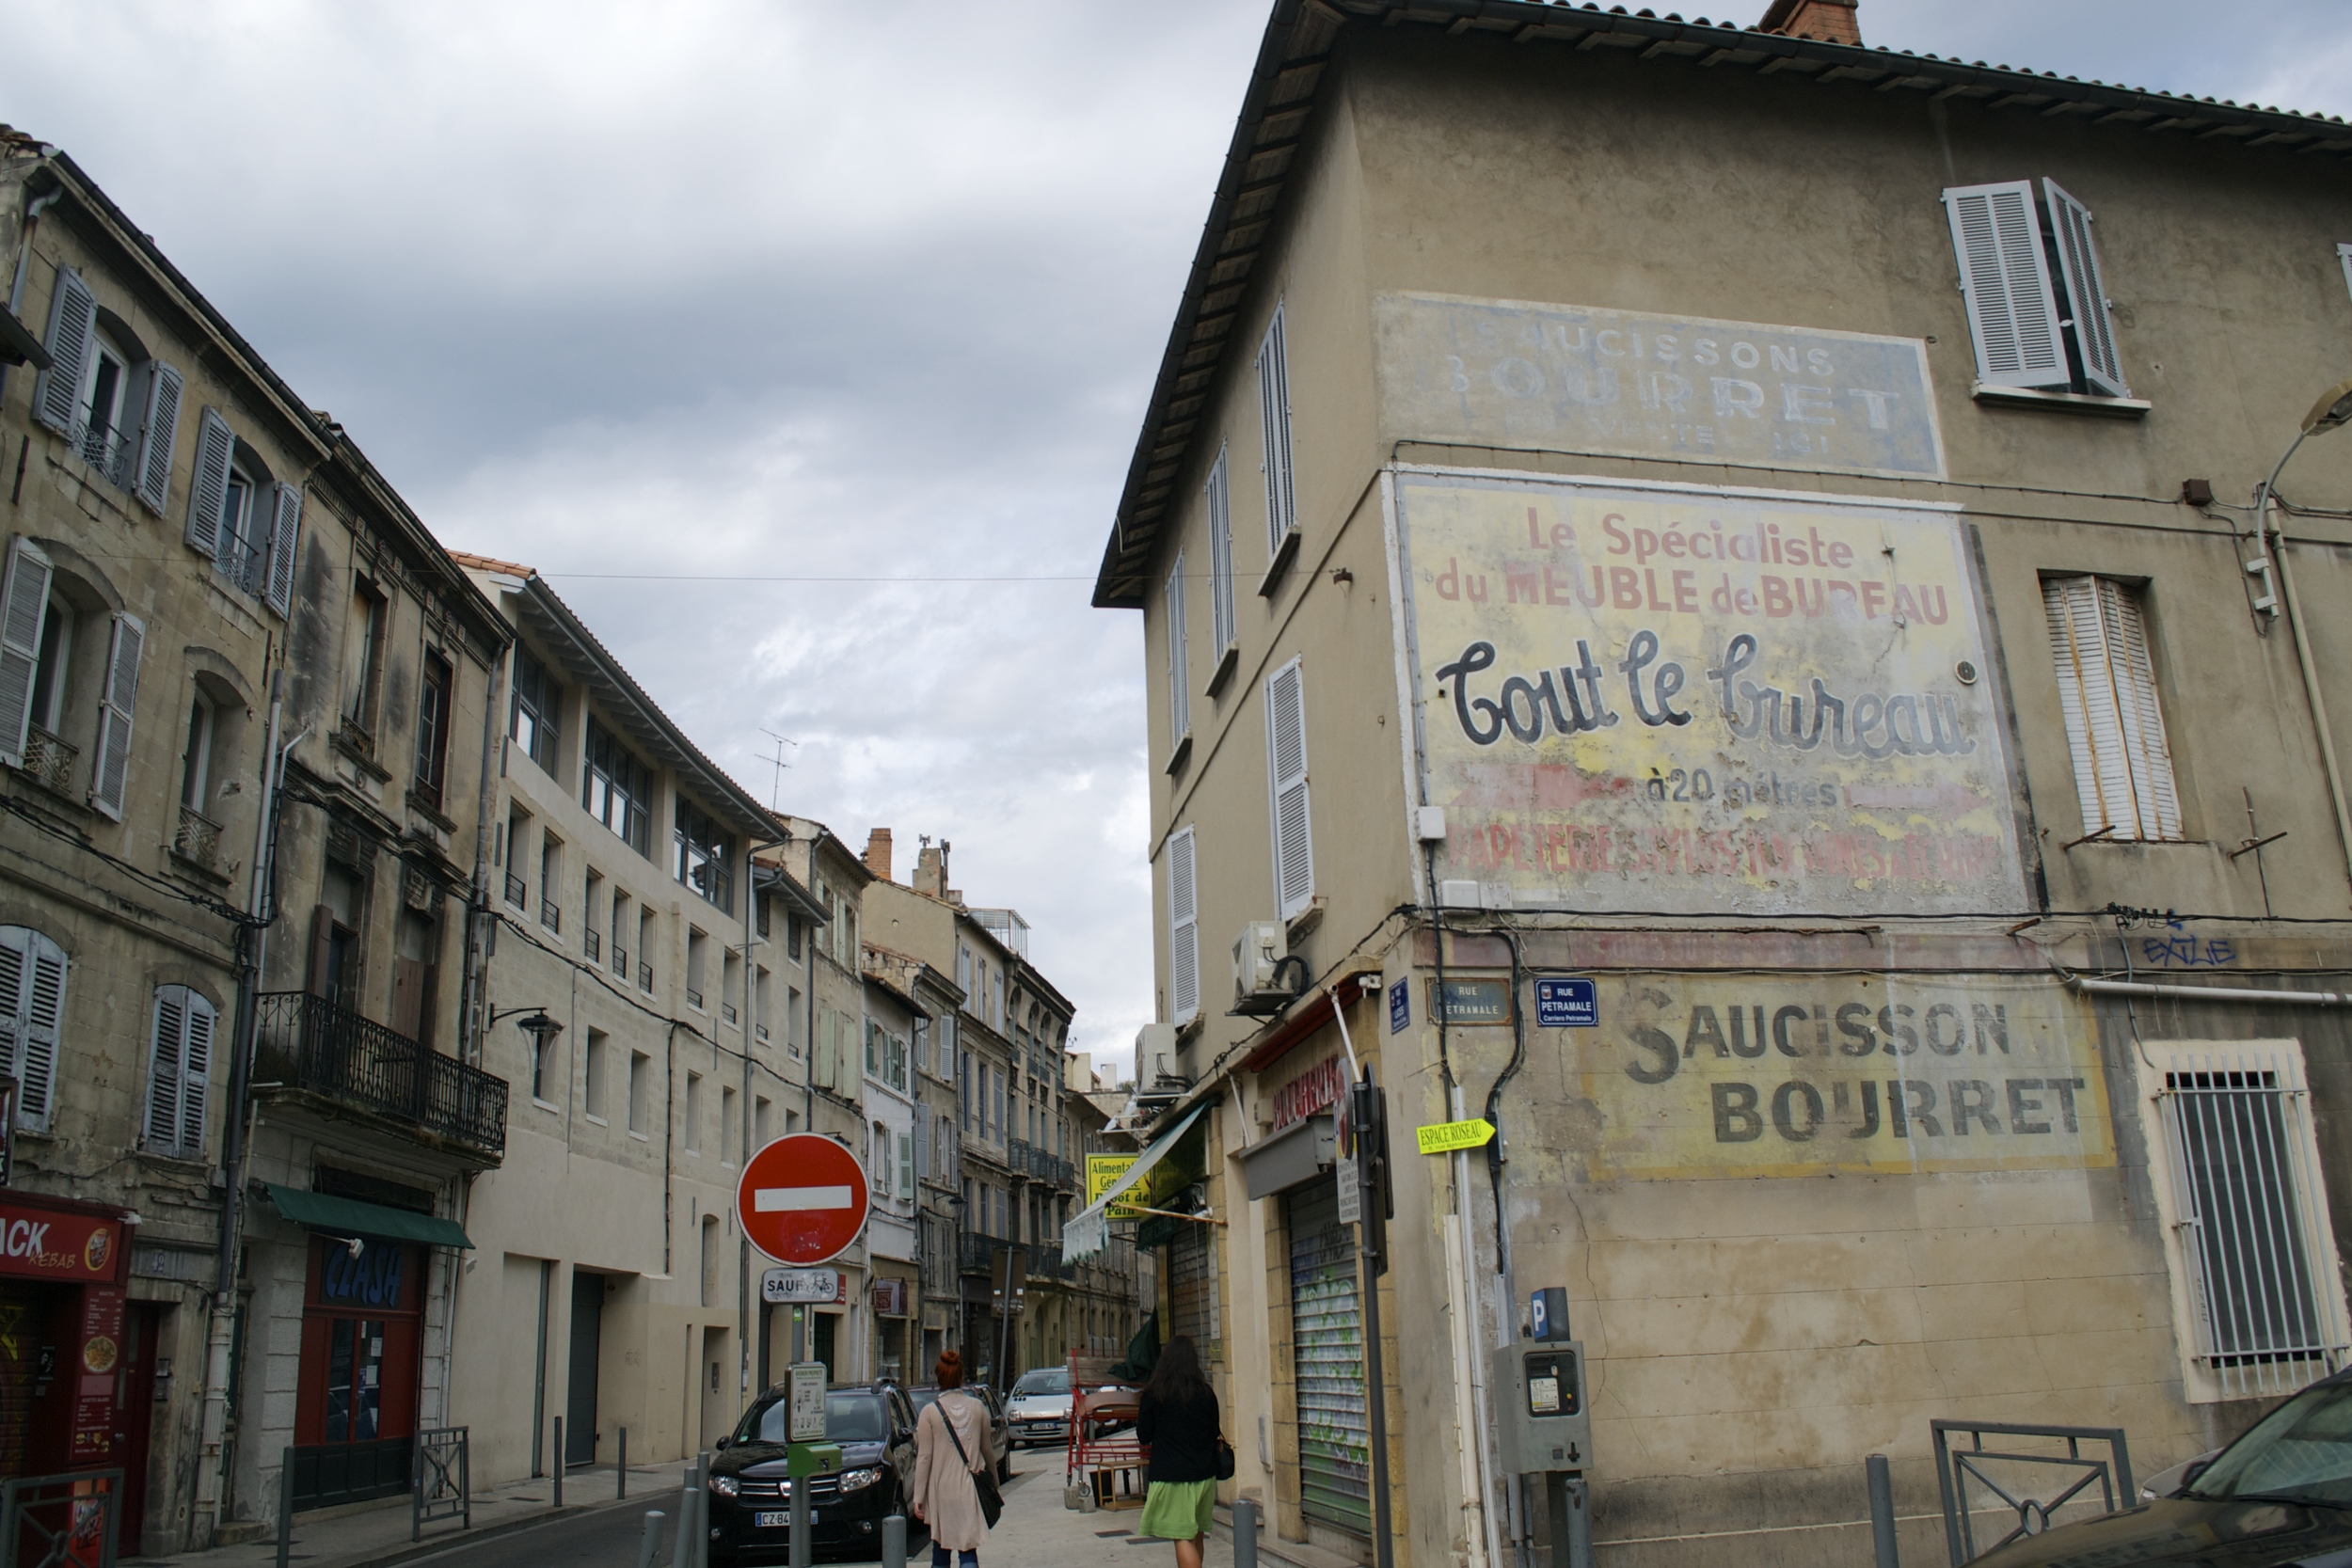 Another look at the streets of Avignon.